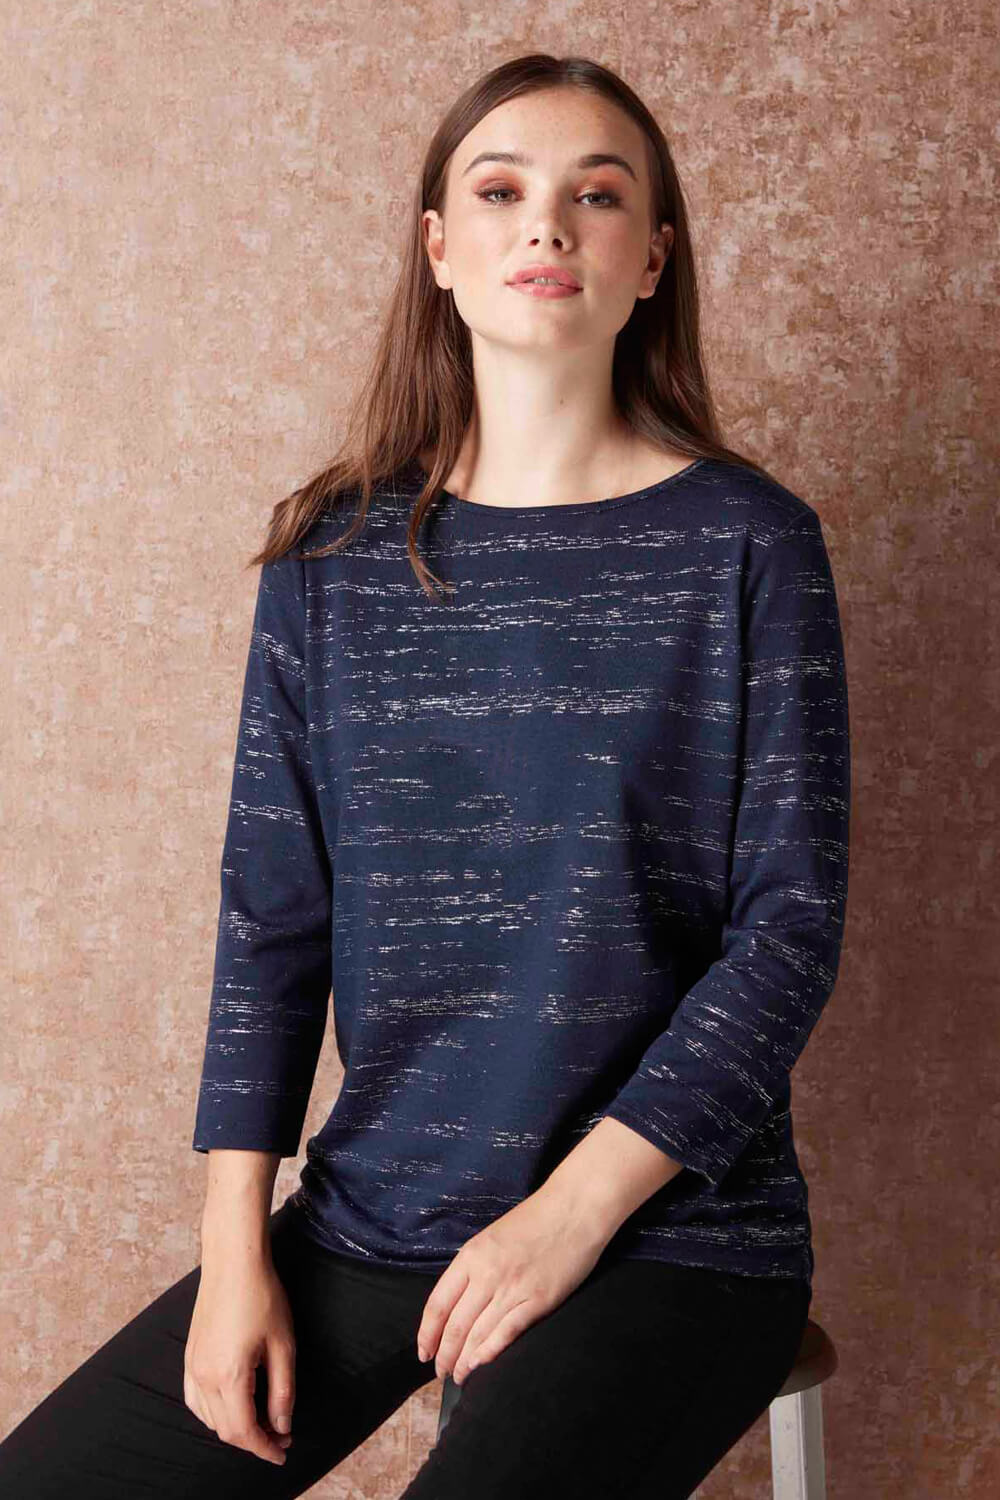 Roman Originals Women Foil Print 3//4 Sleeve Top in Navy sizes 10-20